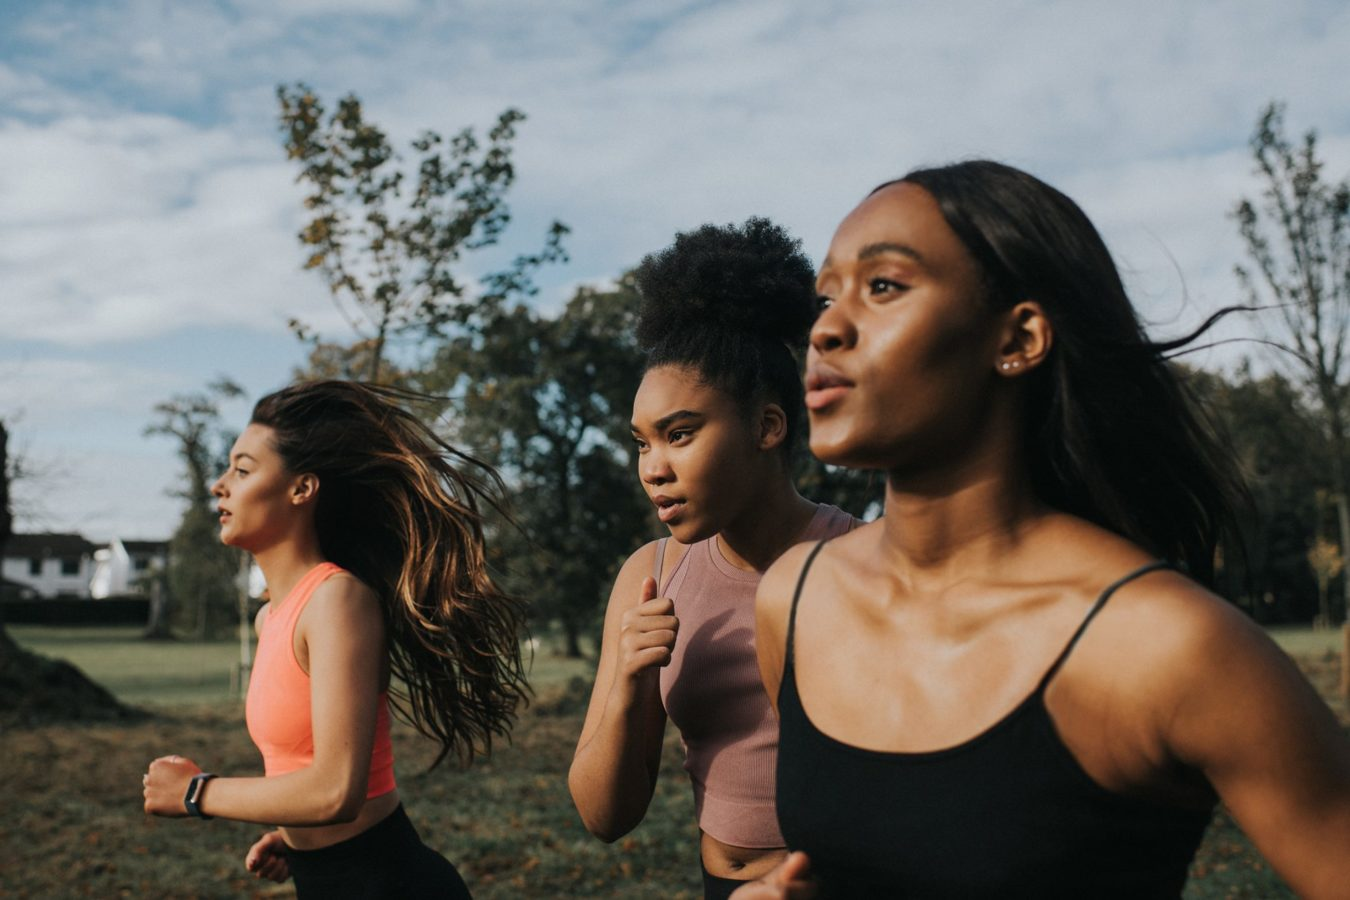 How improving your cardiorespiratory fitness can strengthen your immune system